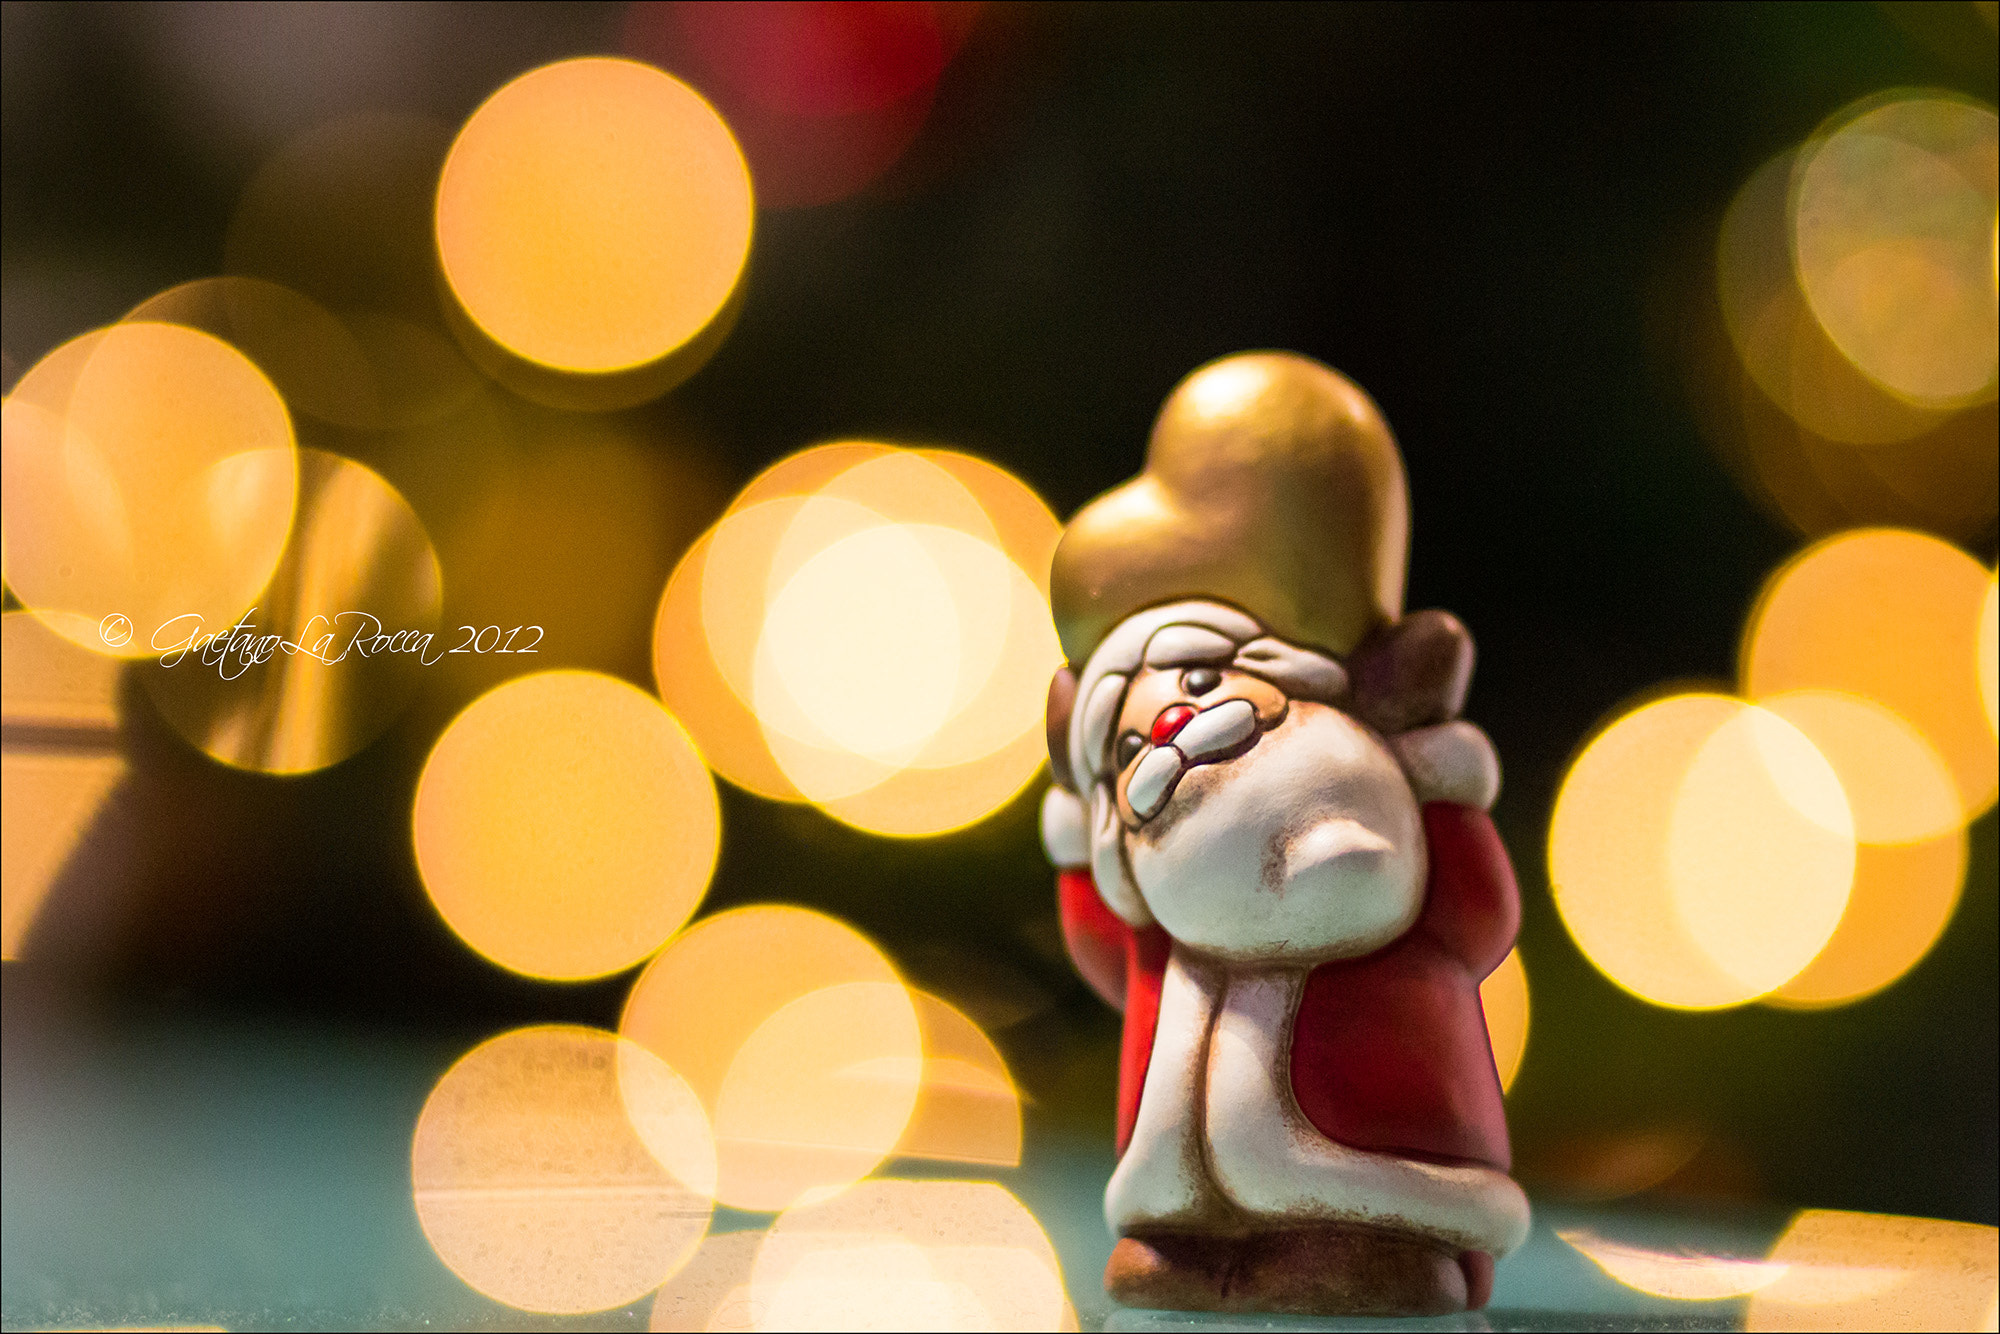 Photograph Happy Christmas by Gaetano La Rocca on 500px